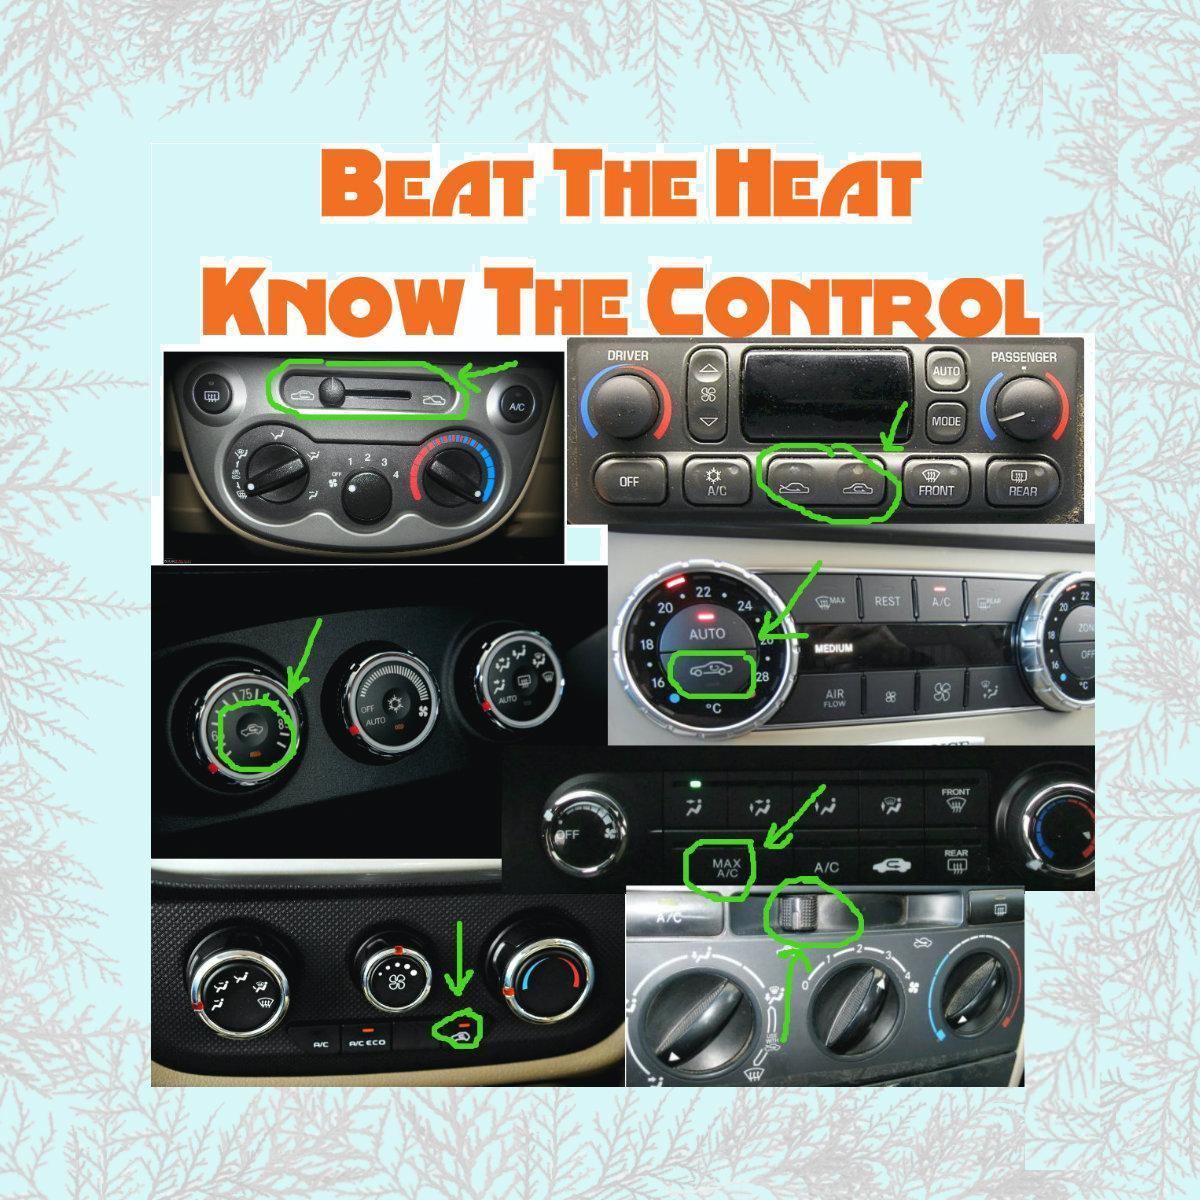 Beat The Heat by Knowing Your AC Controls